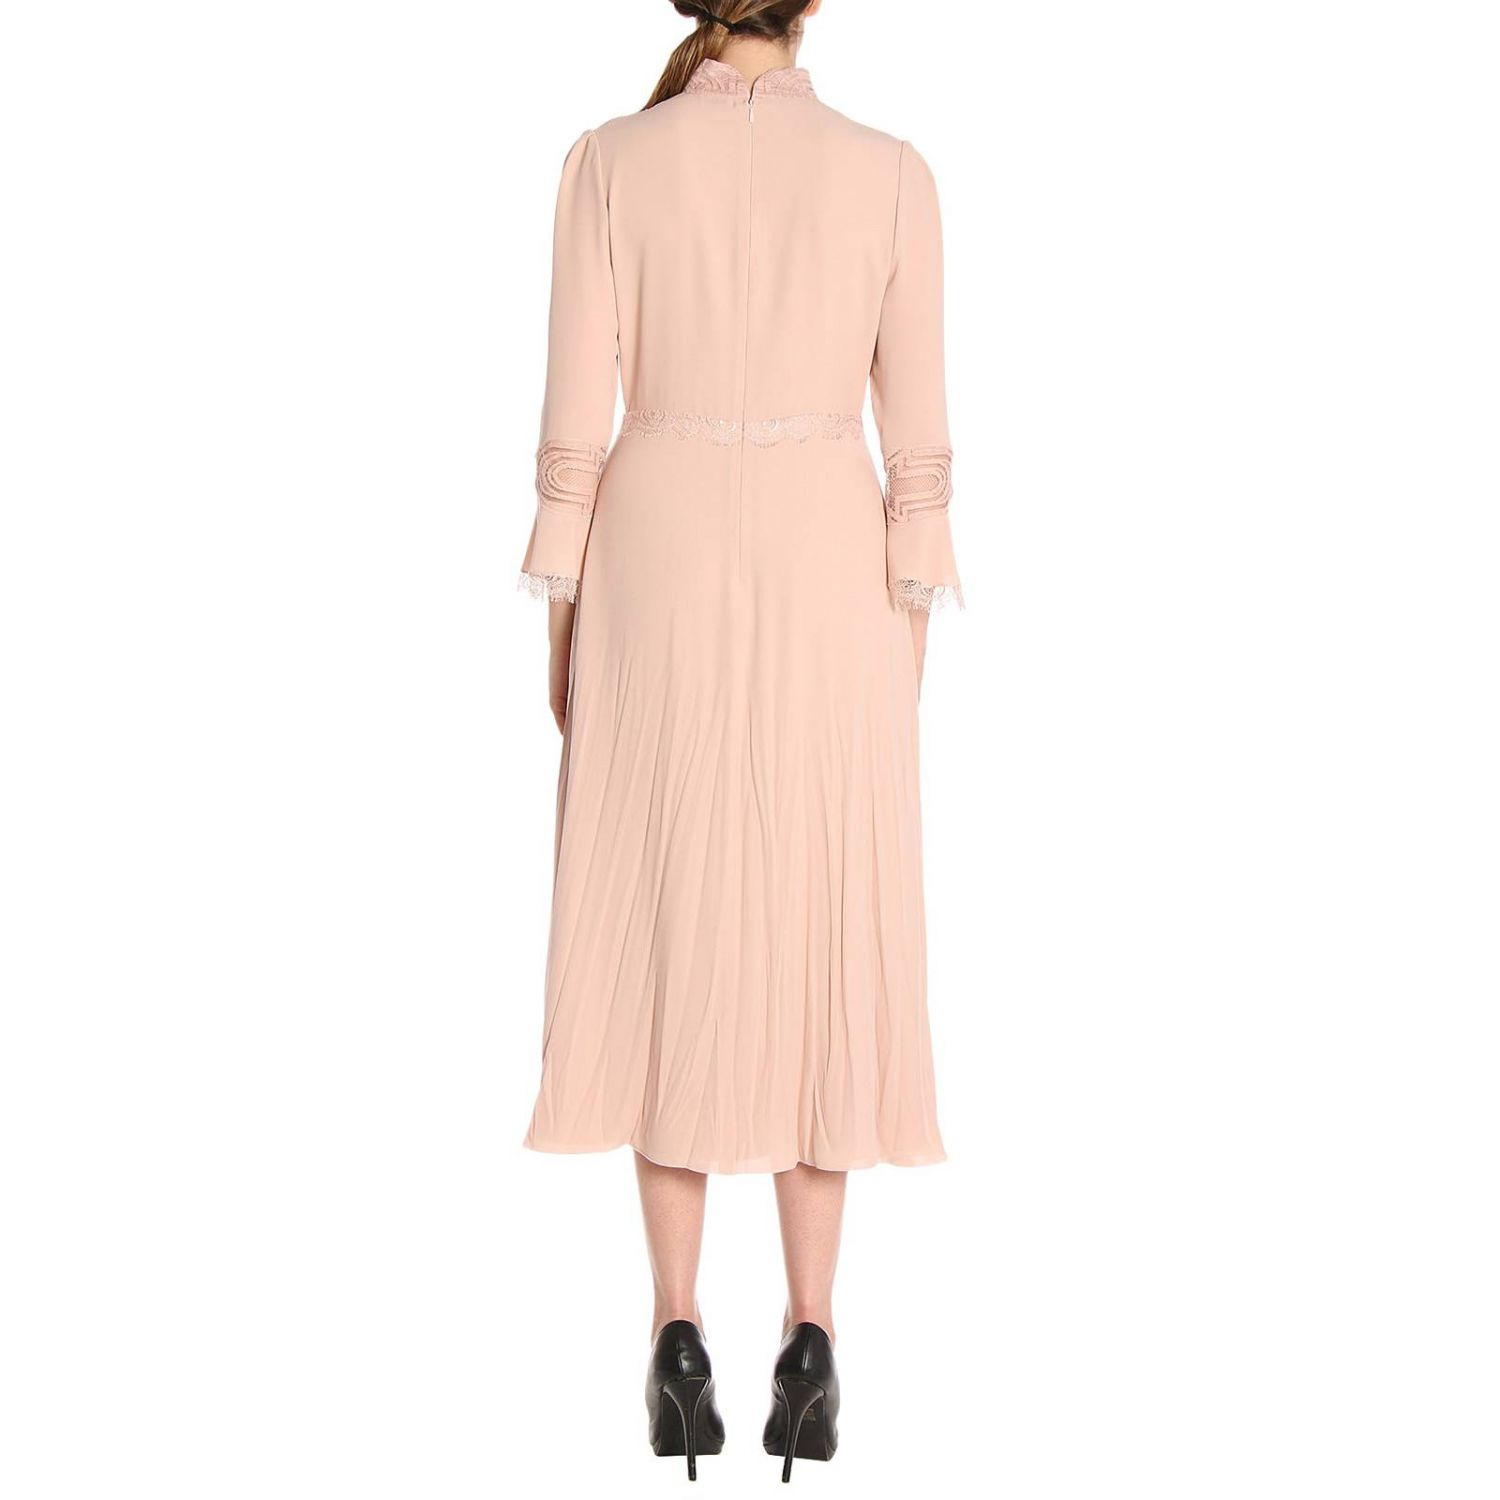 Dress Bottega Veneta: Dress women Bottega Veneta blush pink 3